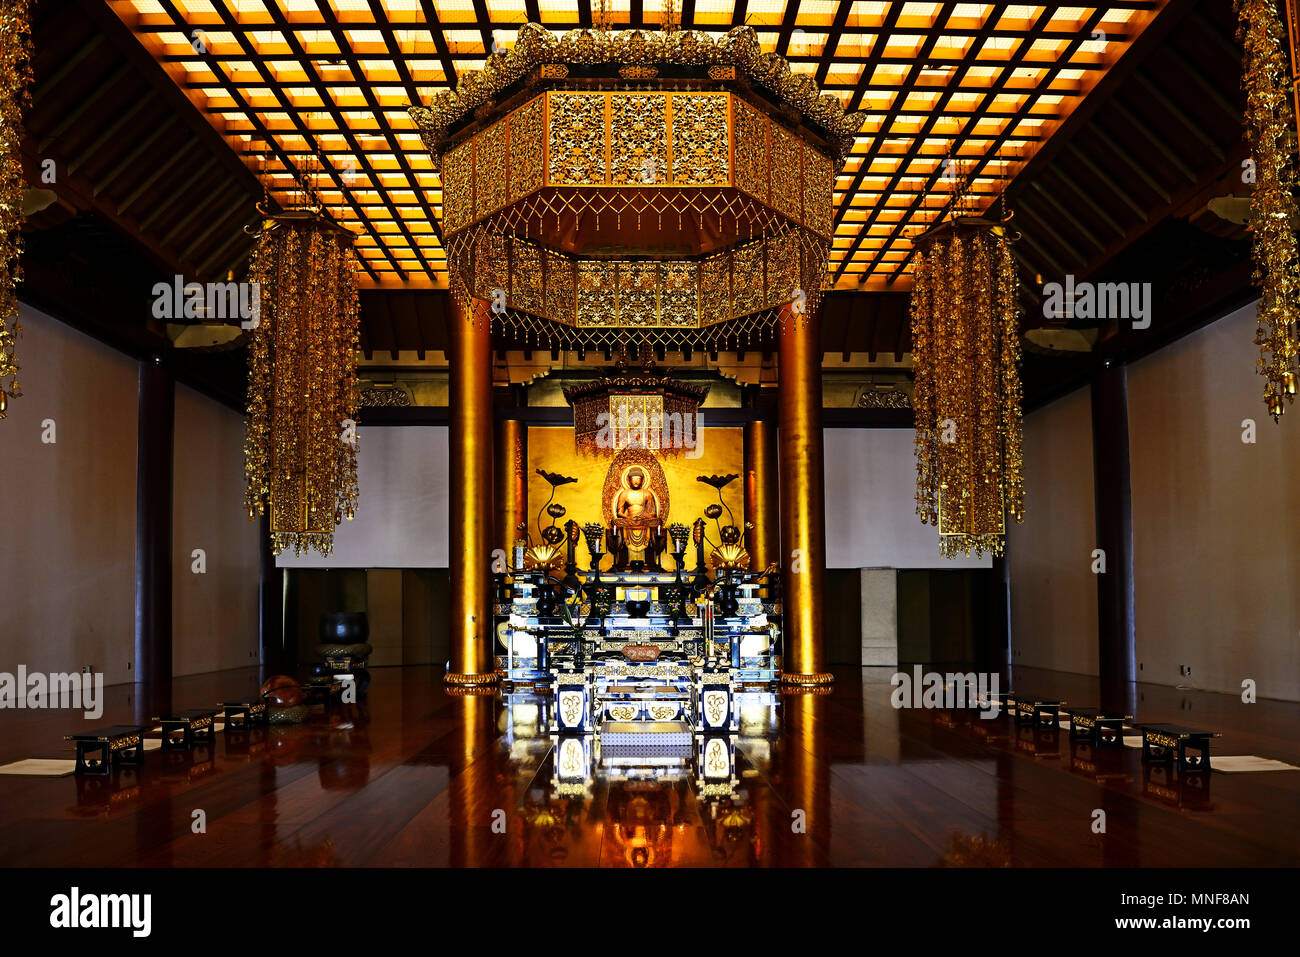 Japan Temple Interior High Resolution Stock Photography And Images Alamy